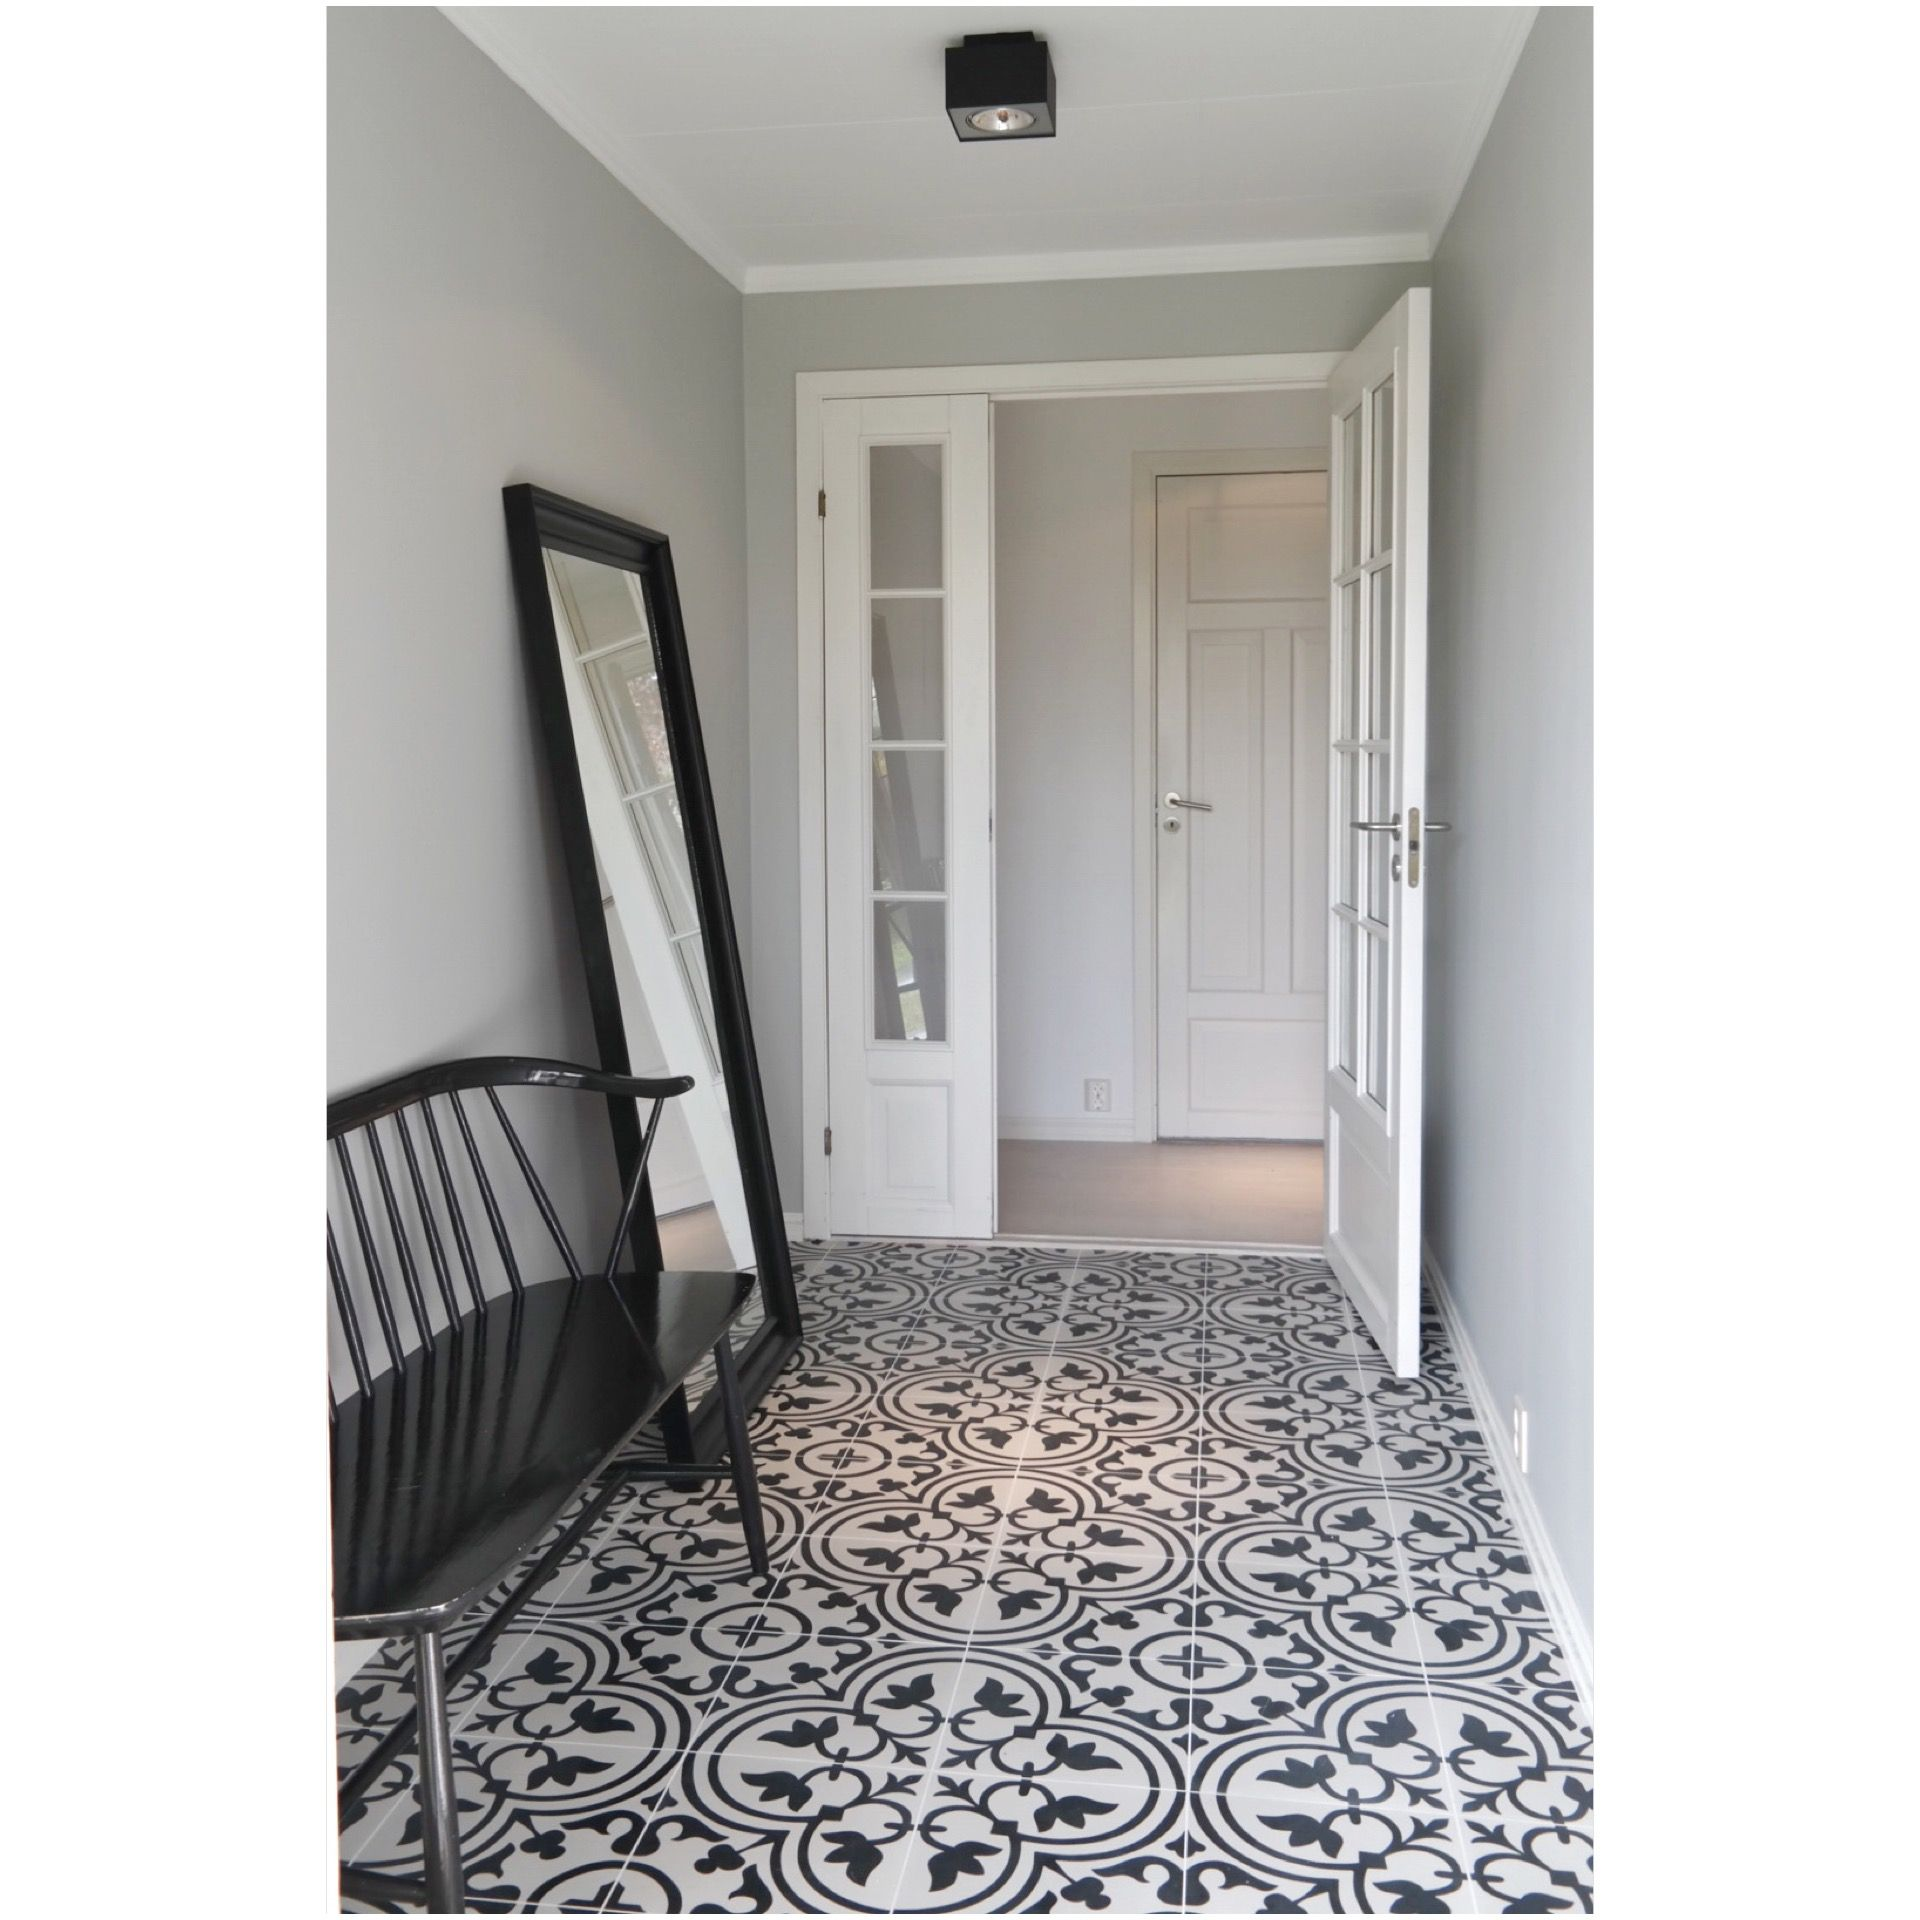 My hall entryway apavisa hydraulic ceramic tiles from bergersen